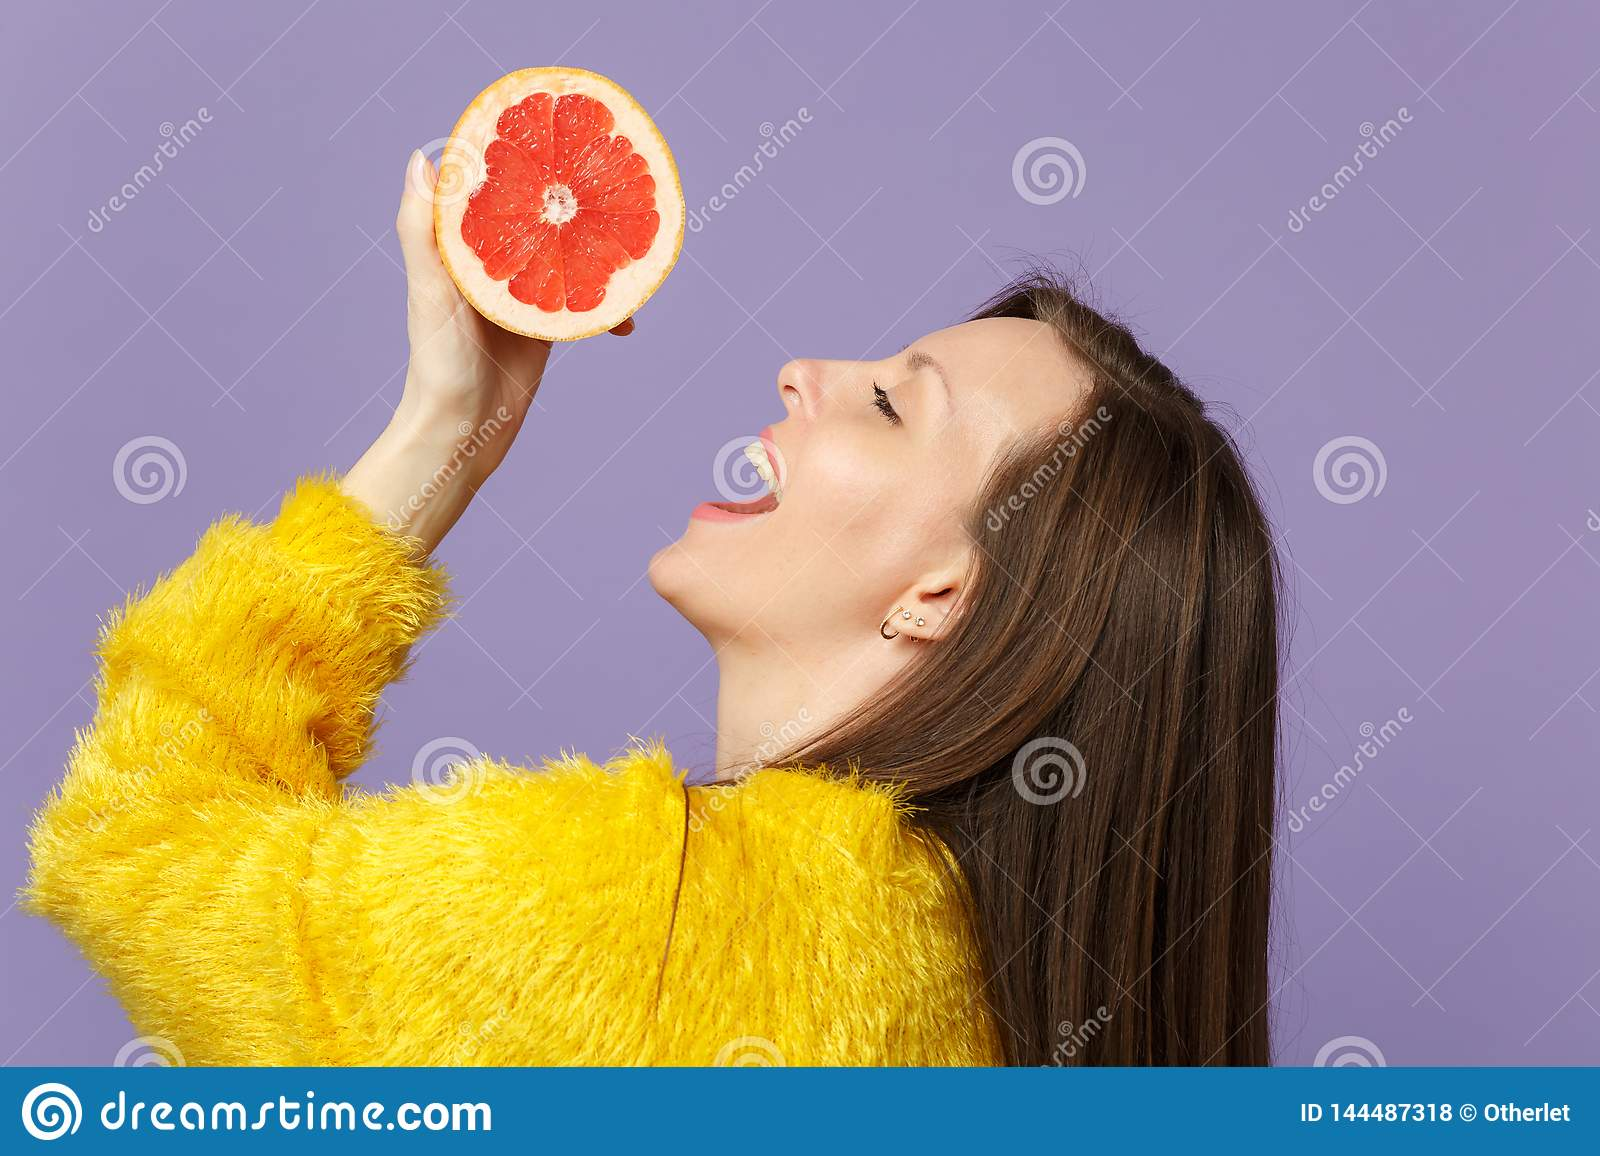 Side view of cheerful young woman in fur sweater holding in hand half of fresh ripe grapefruit isolated on violet pastel